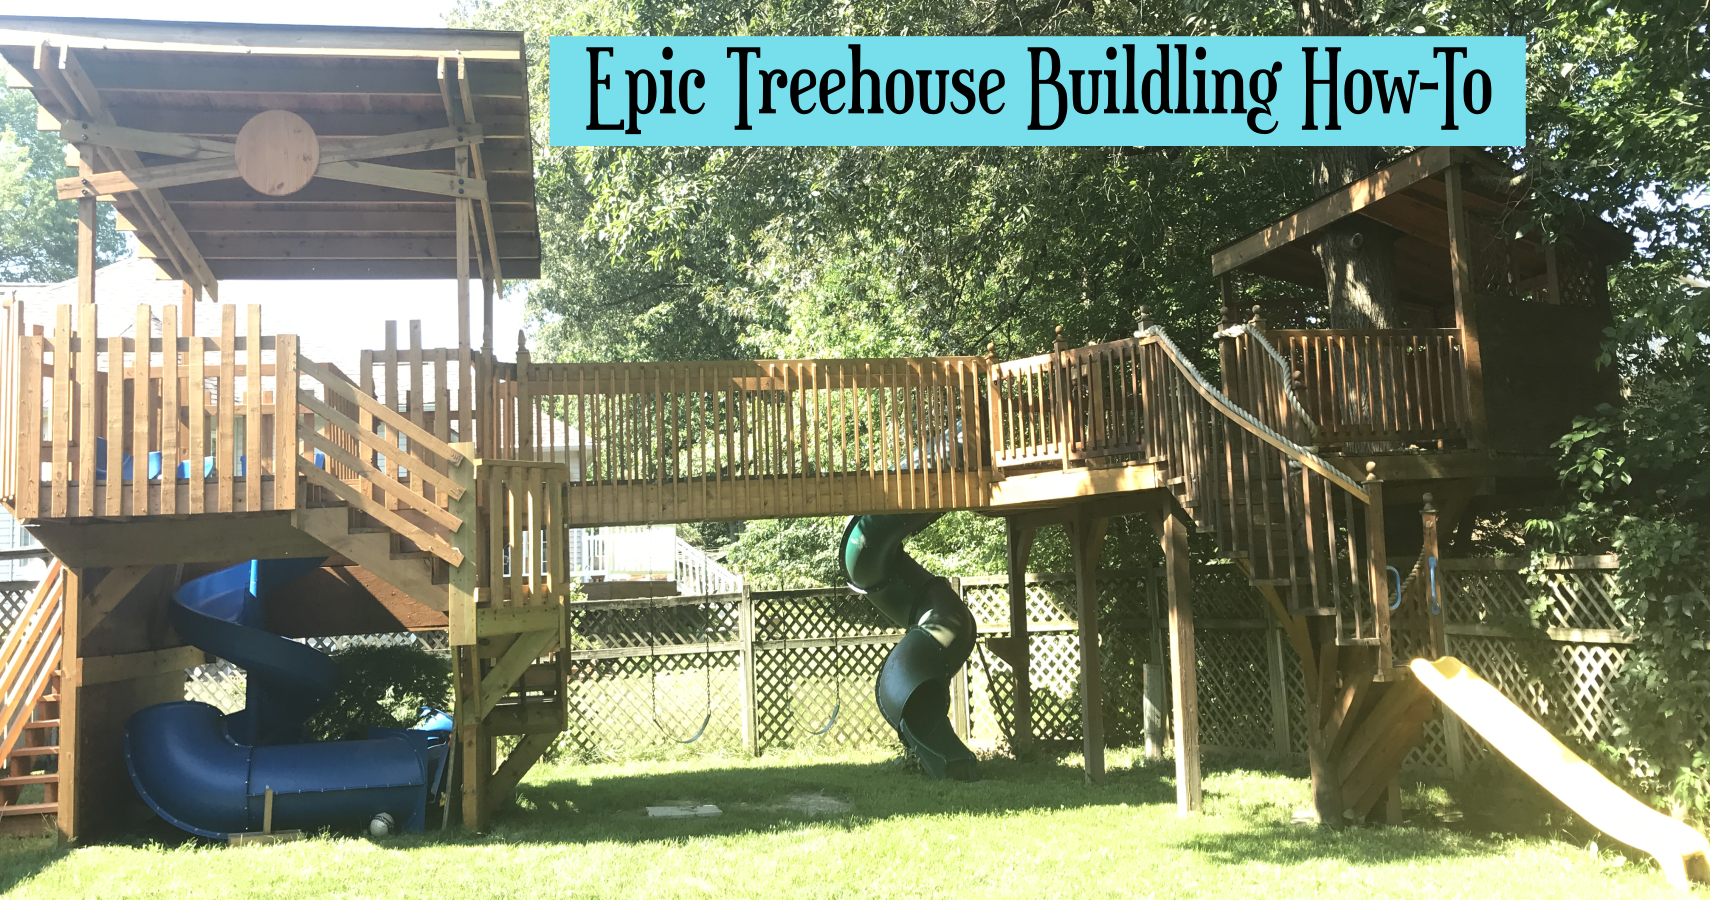 Epic Treehouse Building How-To